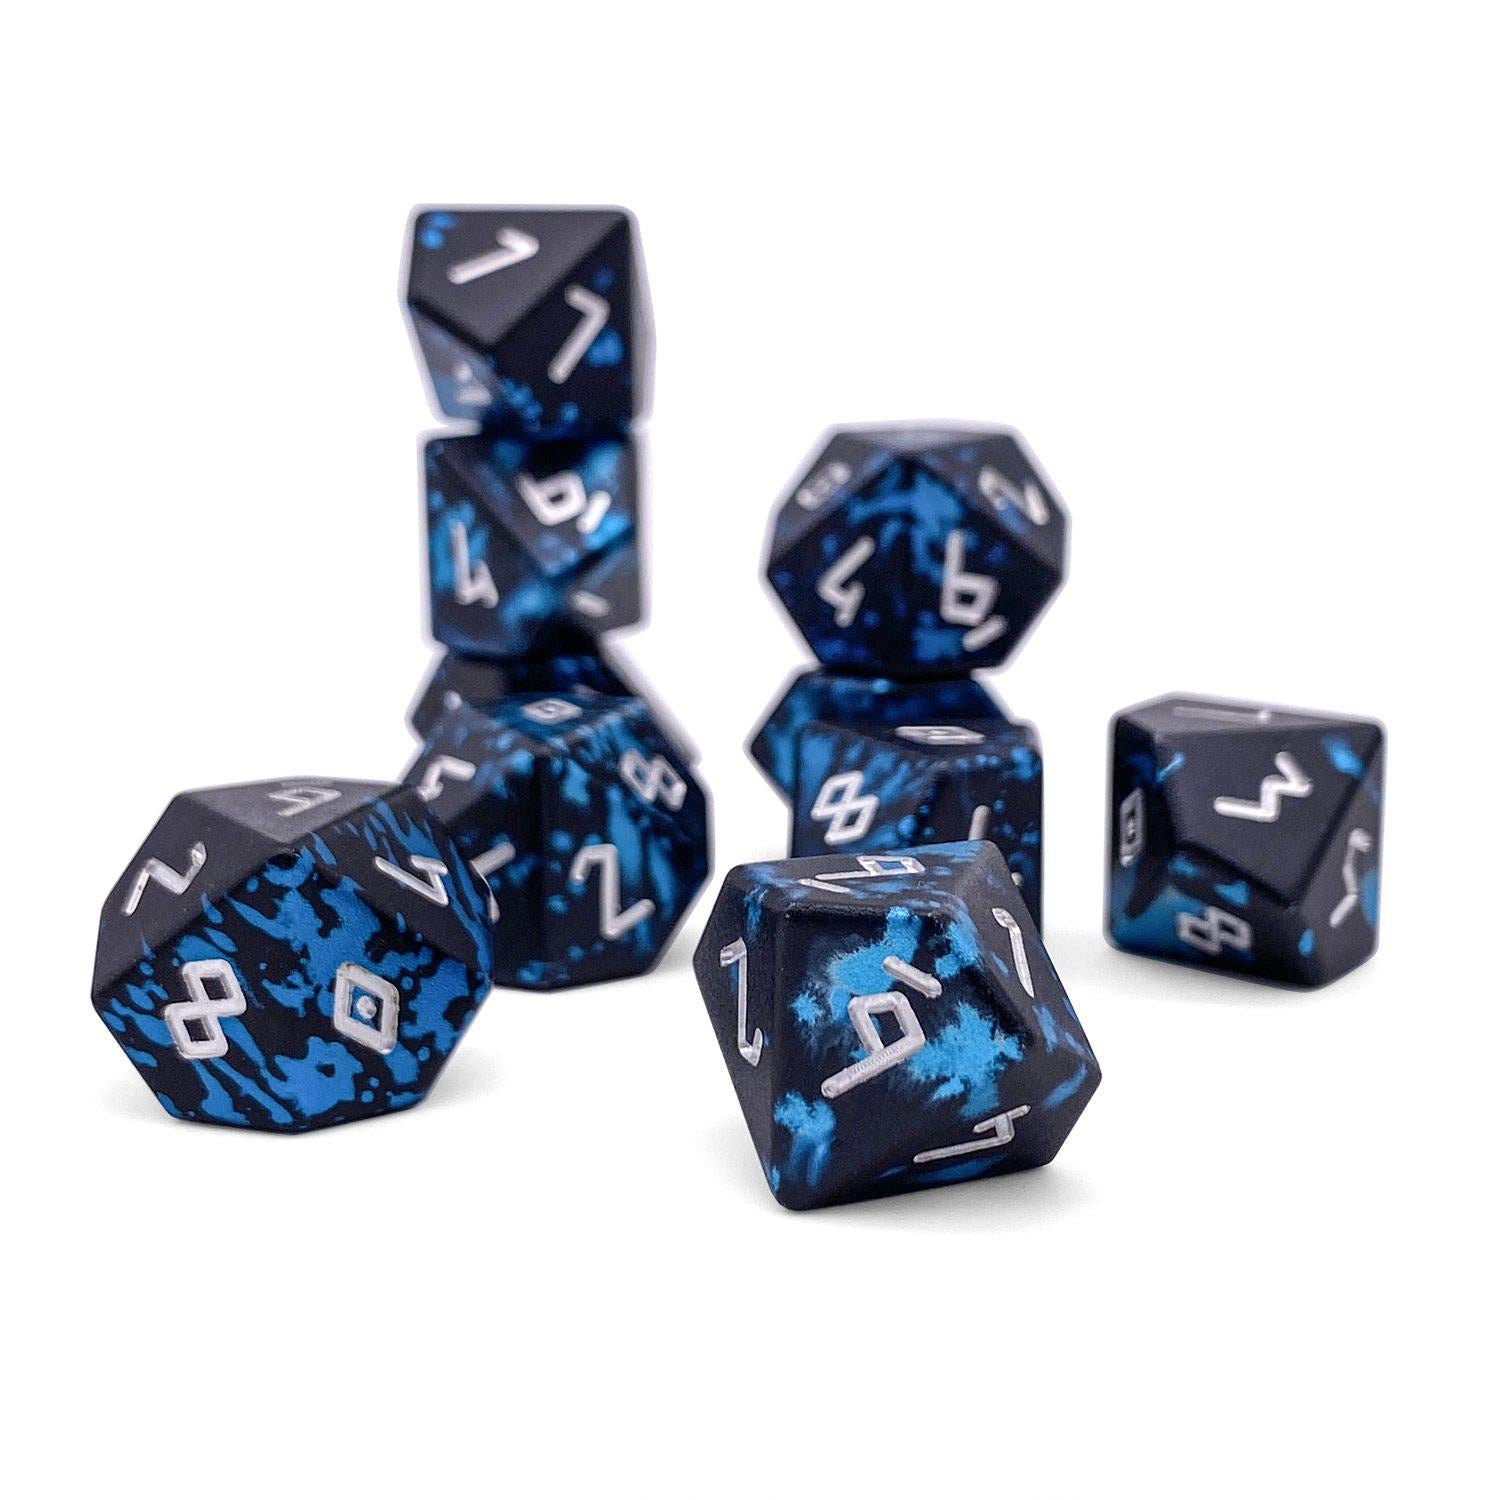 Willow O' Wisp - Set of 10 D10s - Wondrous Dice